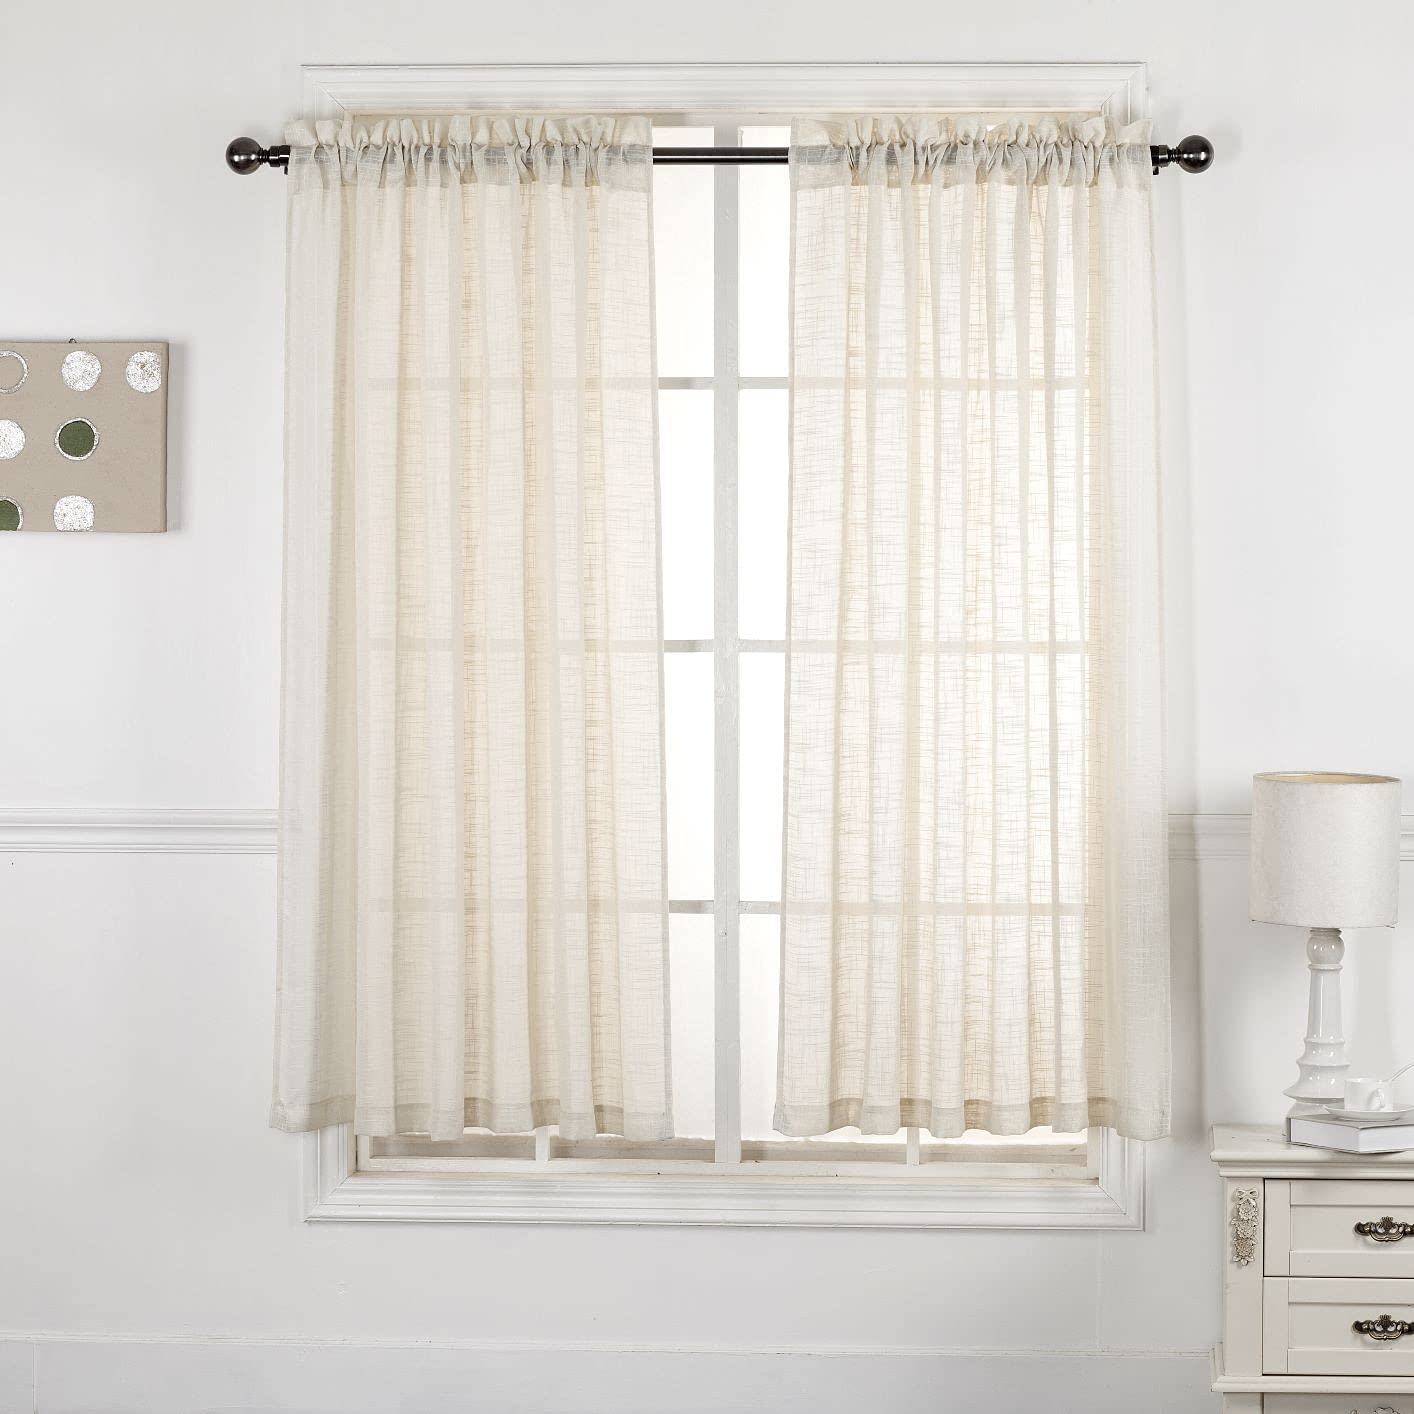 Home Decoration Linen Look Sheer Curtains - Rod Pocket Translucent Privacy Curtains Drapes Panels for Bedroom / Nursery / Kids Room (Beige, 52